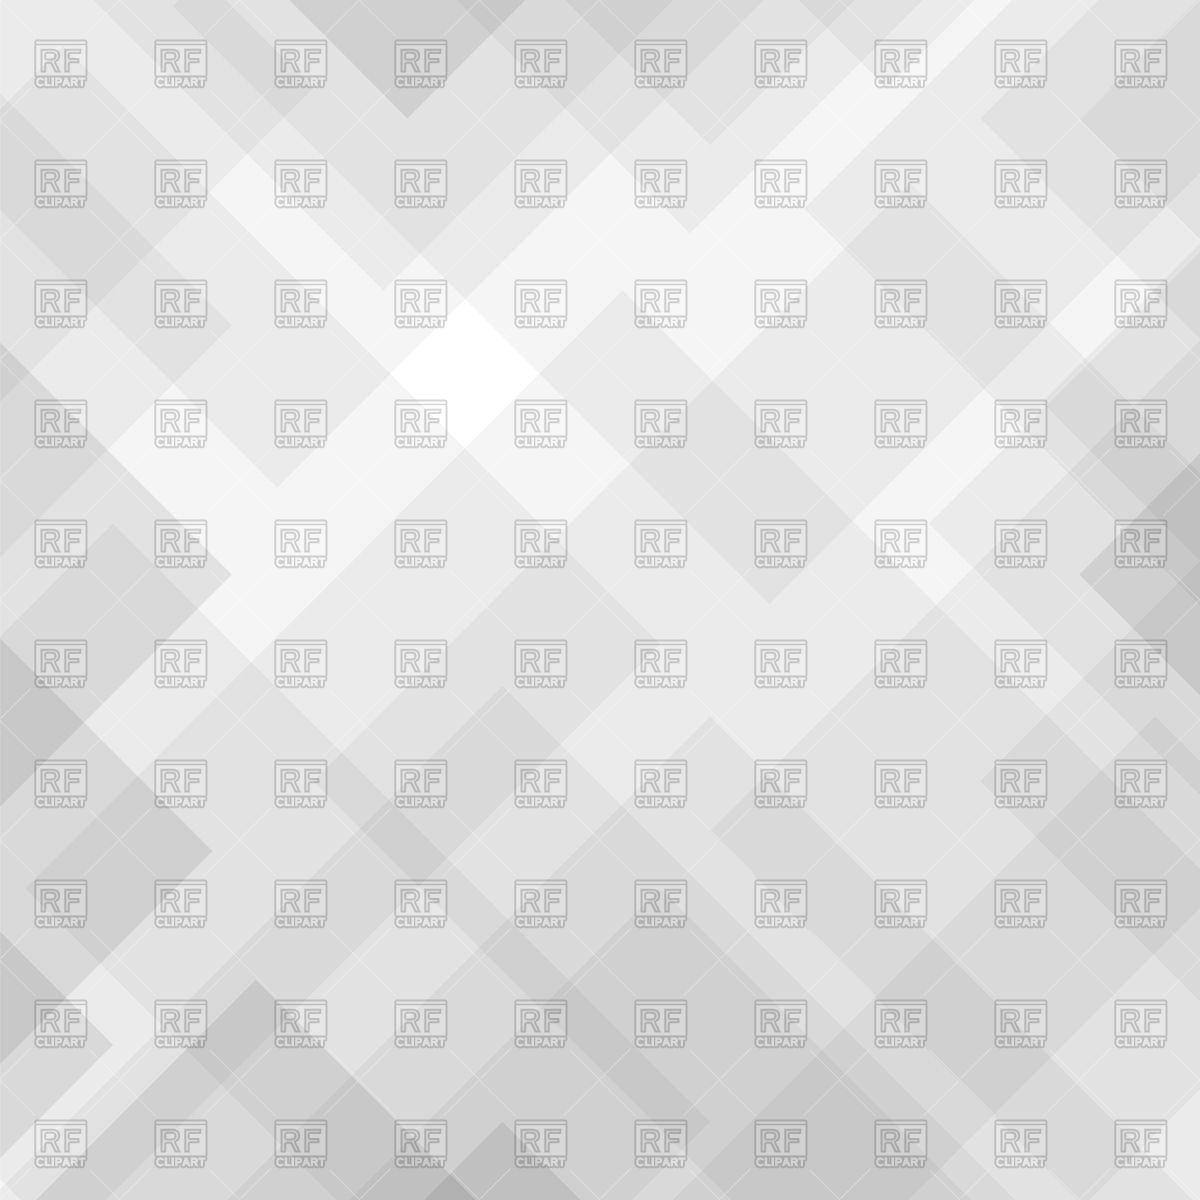 Grey background clipart.